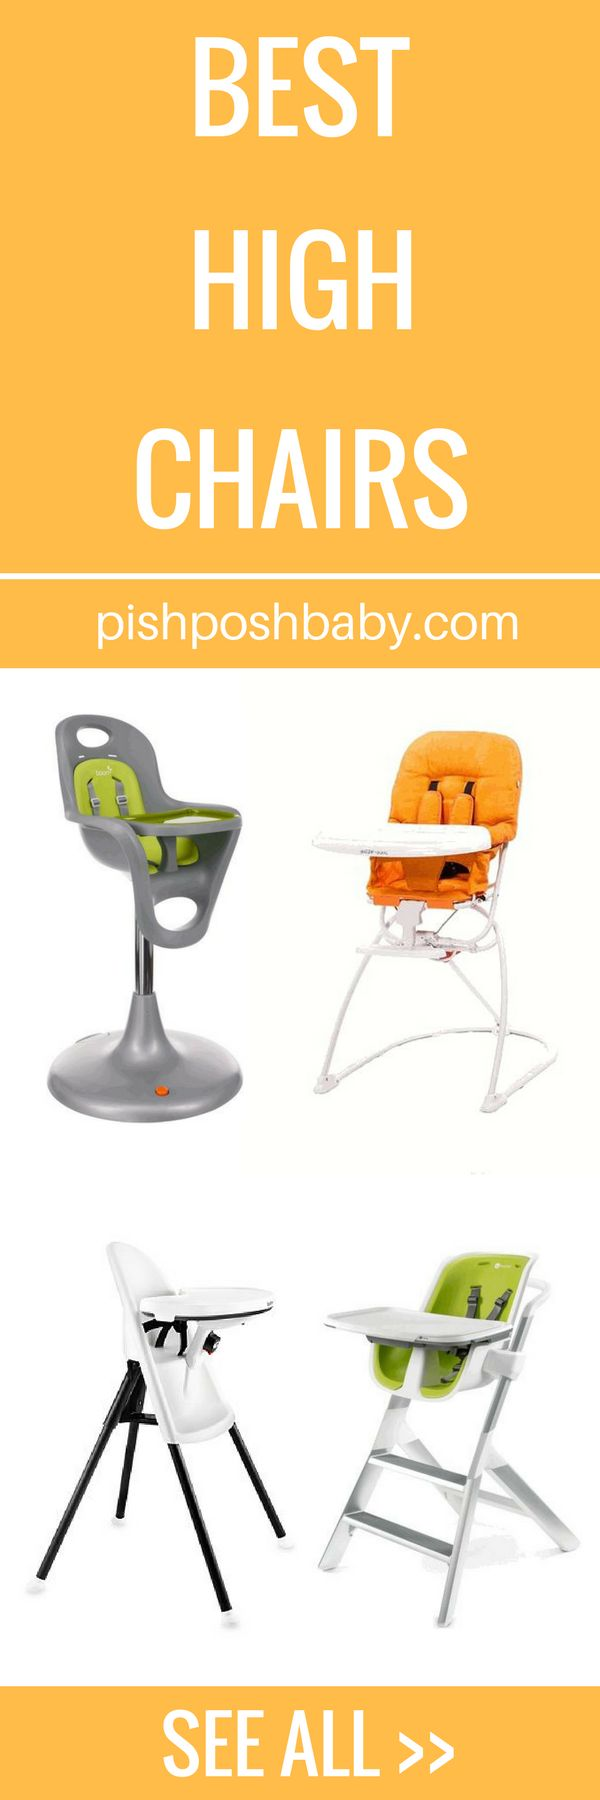 best  best baby high chair ideas only on pinterest  maternity  - best modern high chairs for baby boy  baby girl  convertible  portable highchairs for travel in awesome design  you'll find chairs like babybjÖrn high